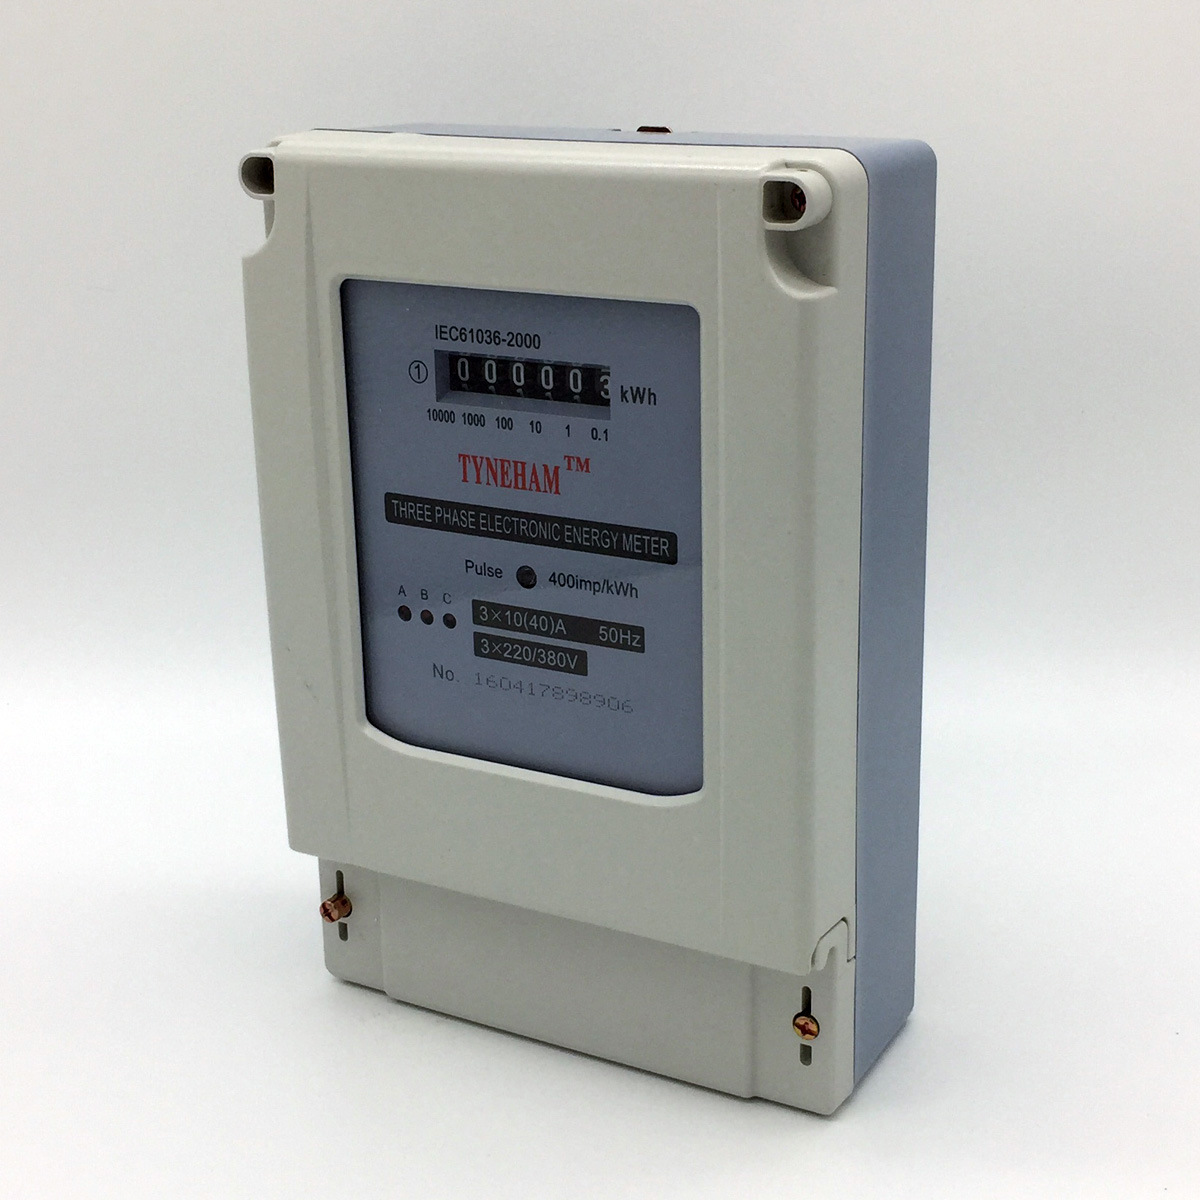 Dts-3r Series Three Phase Electronic Energy Meter